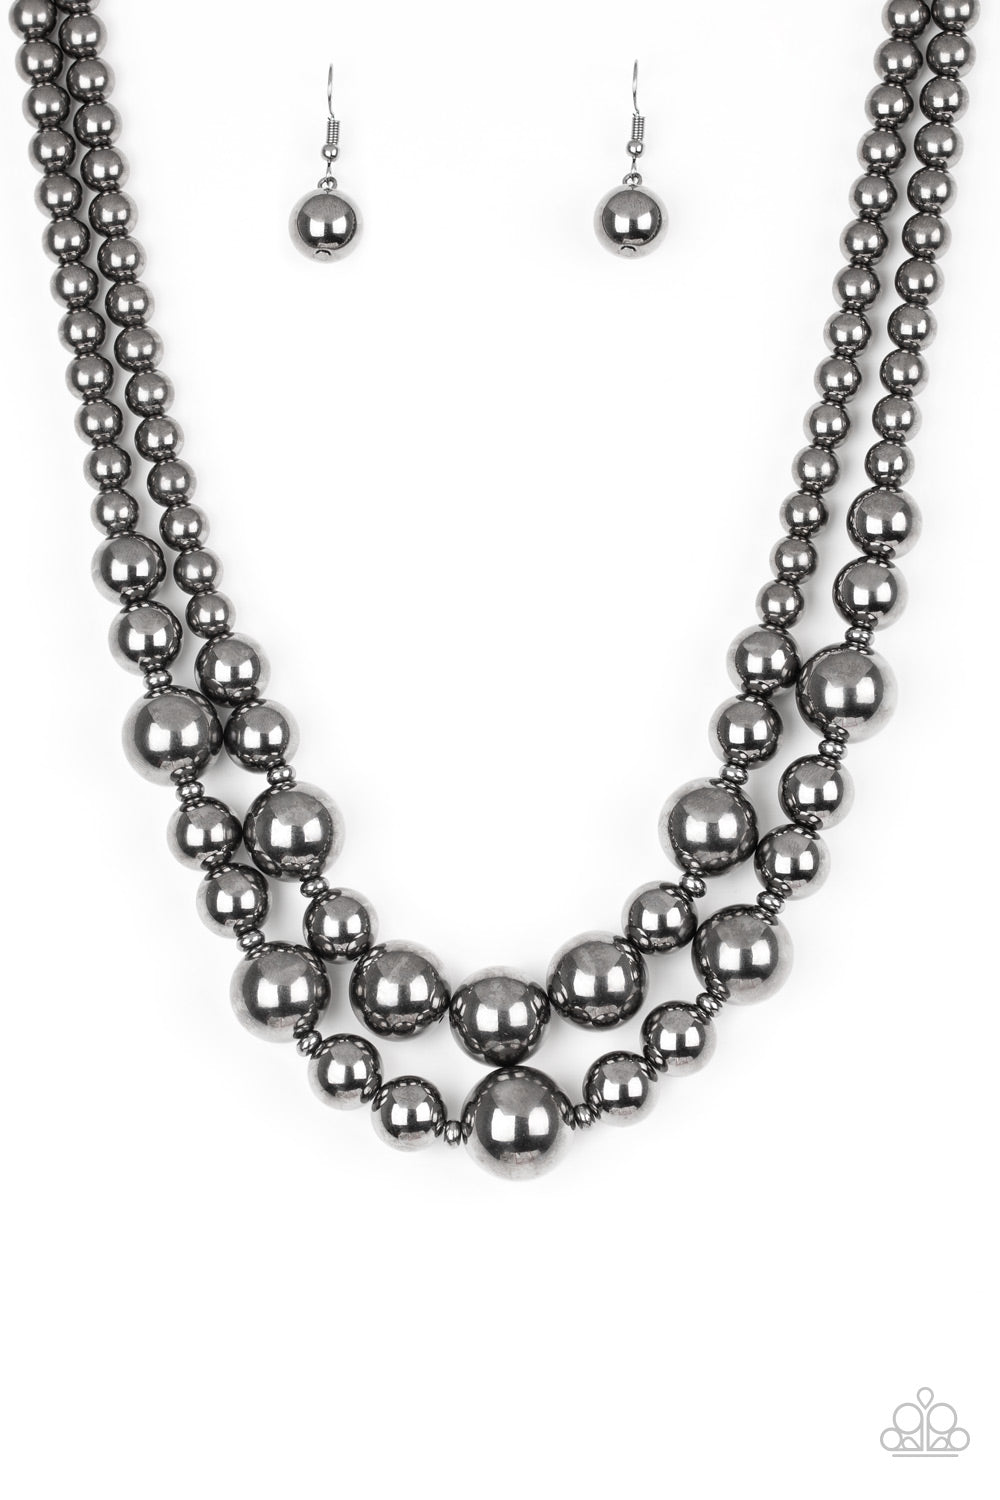 five-dollar-jewelry-i-double-dare-you-black-necklace-paparazzi-accessories